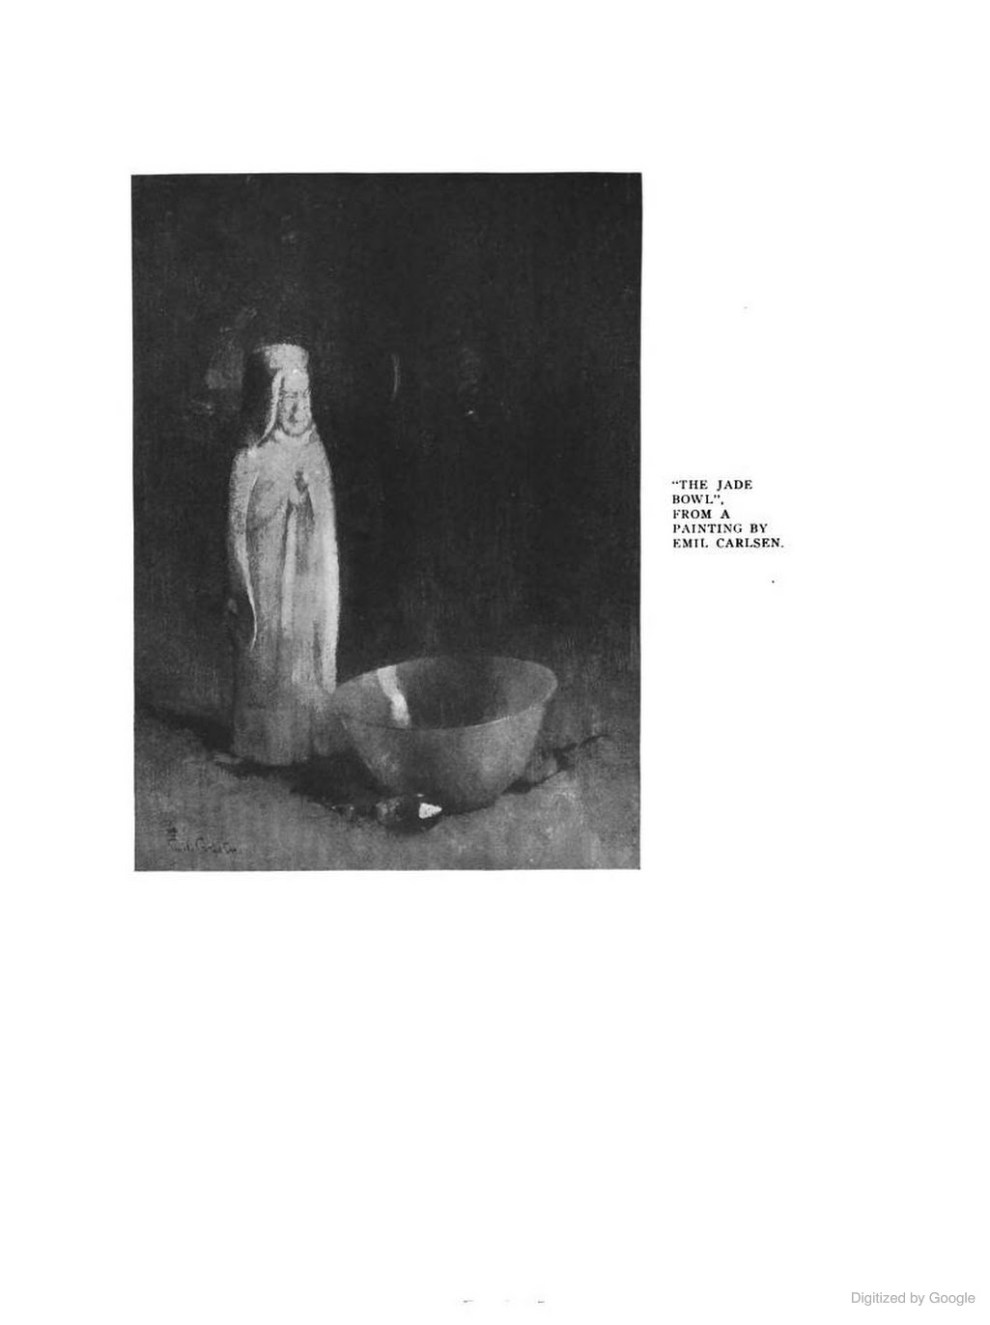 """The Touchstone and the American Art Student Magazine, New York, NY, """"Still Life Paintings As Inspiration for Home Decoration: Illustrated By The Work of Emil Carlsen"""", Mary Fanton Roberts Incorporated, 1920, Volume 7, page 110-116, illustrated: b&w"""